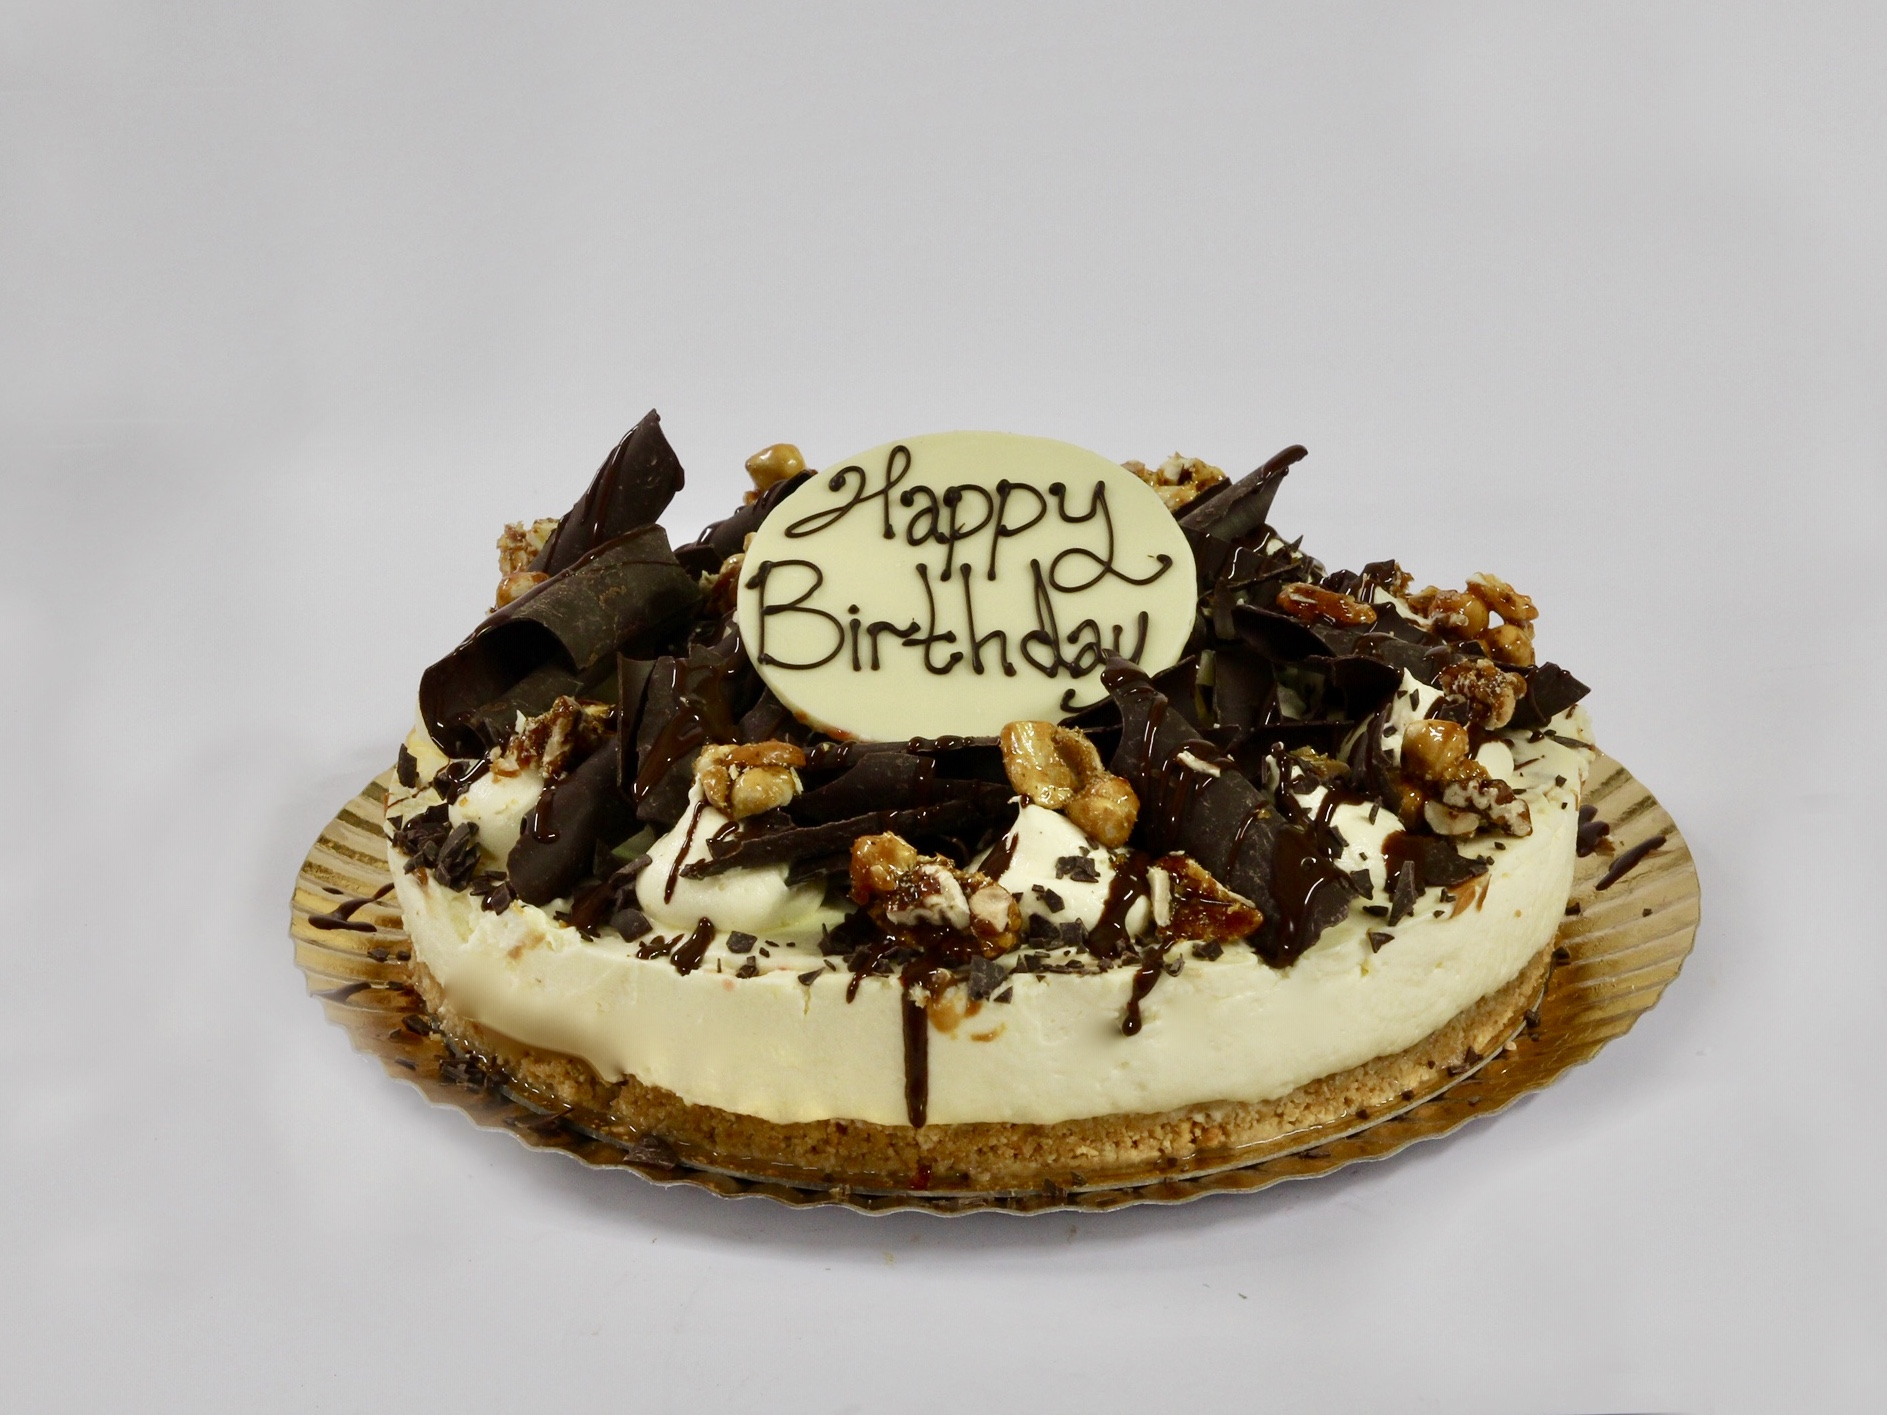 Celebration Cakes - Chocolate Nut Cheesecake